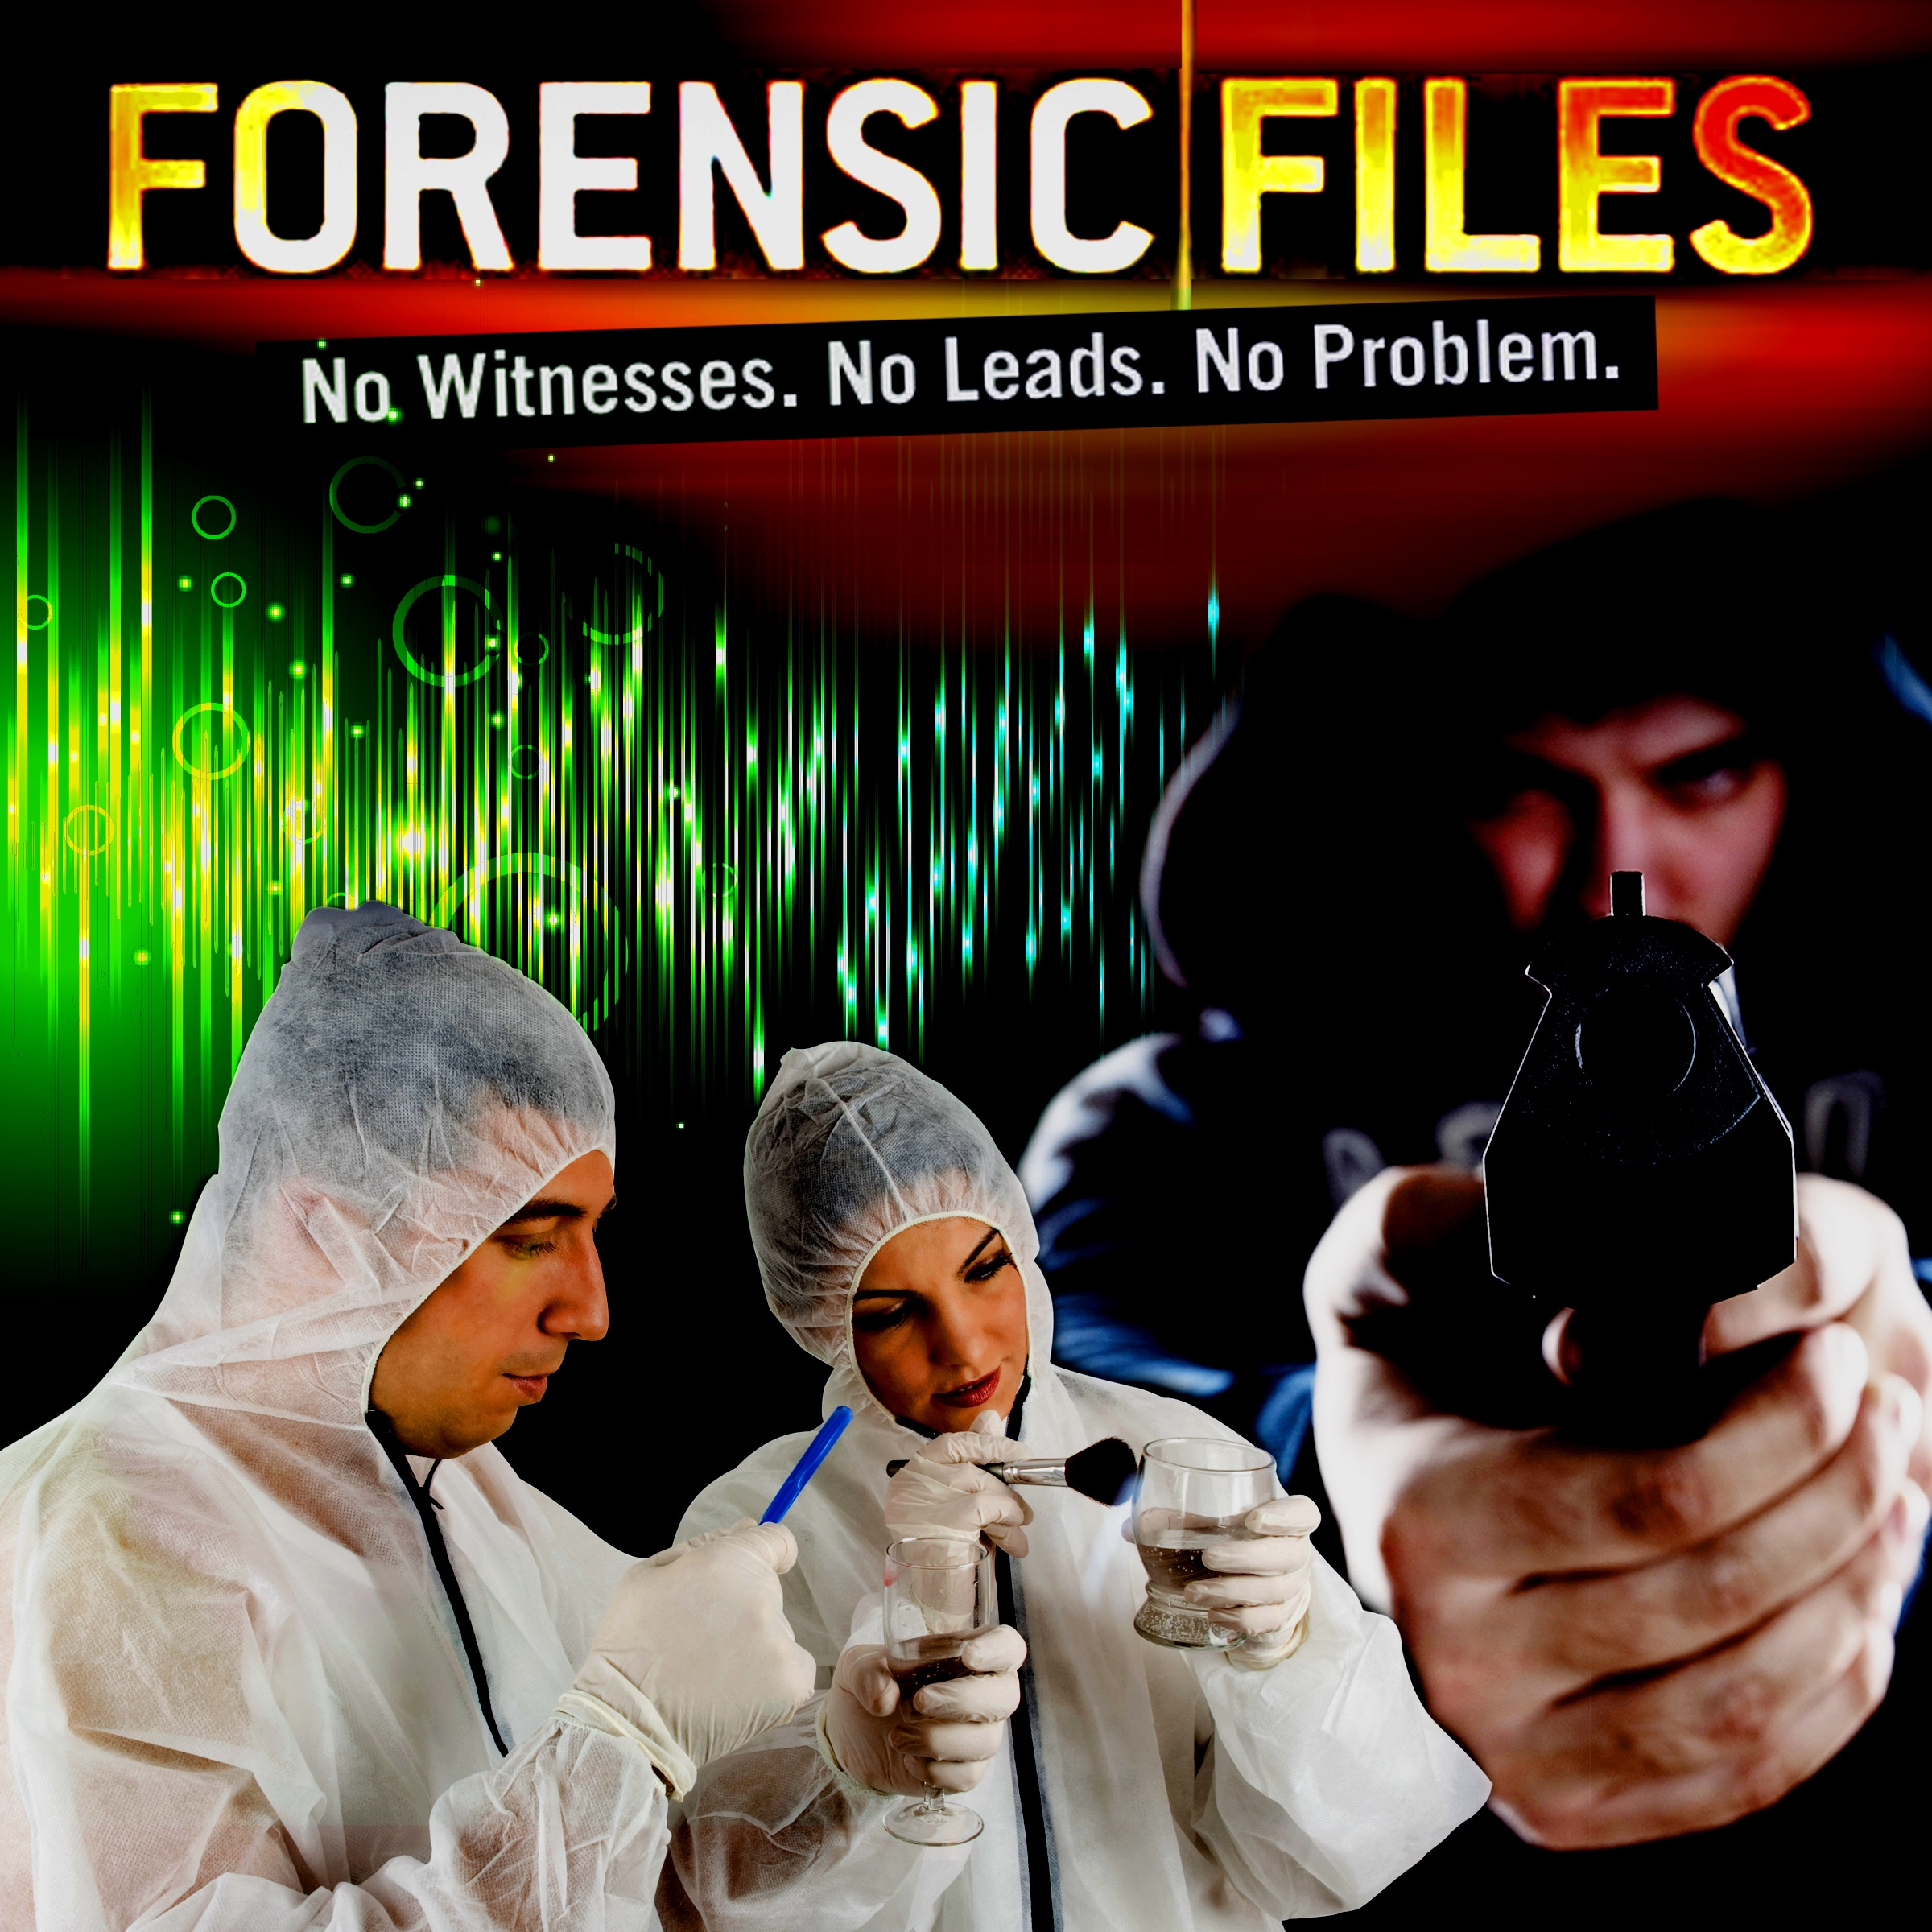 A review of a tv show forensic files